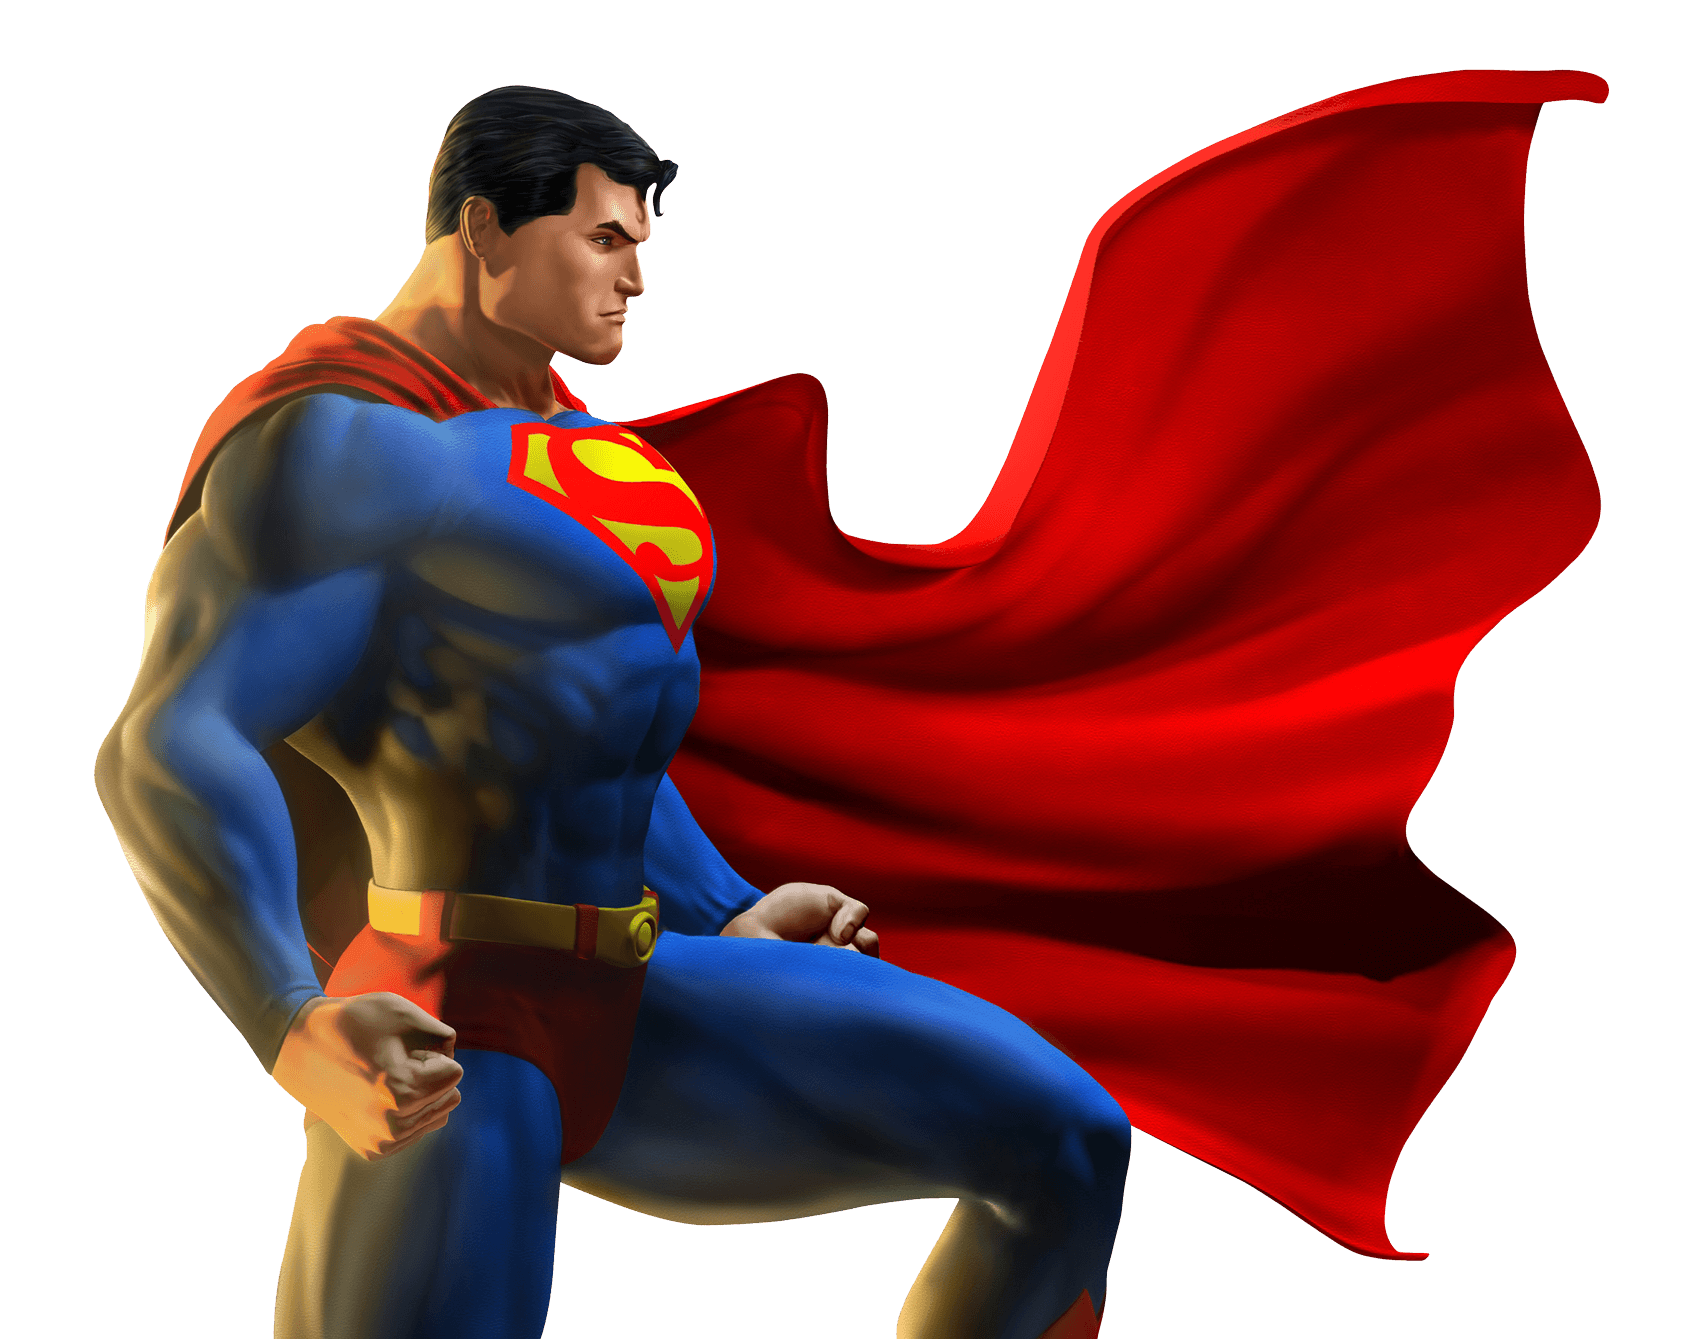 superman png high definition quality #12220